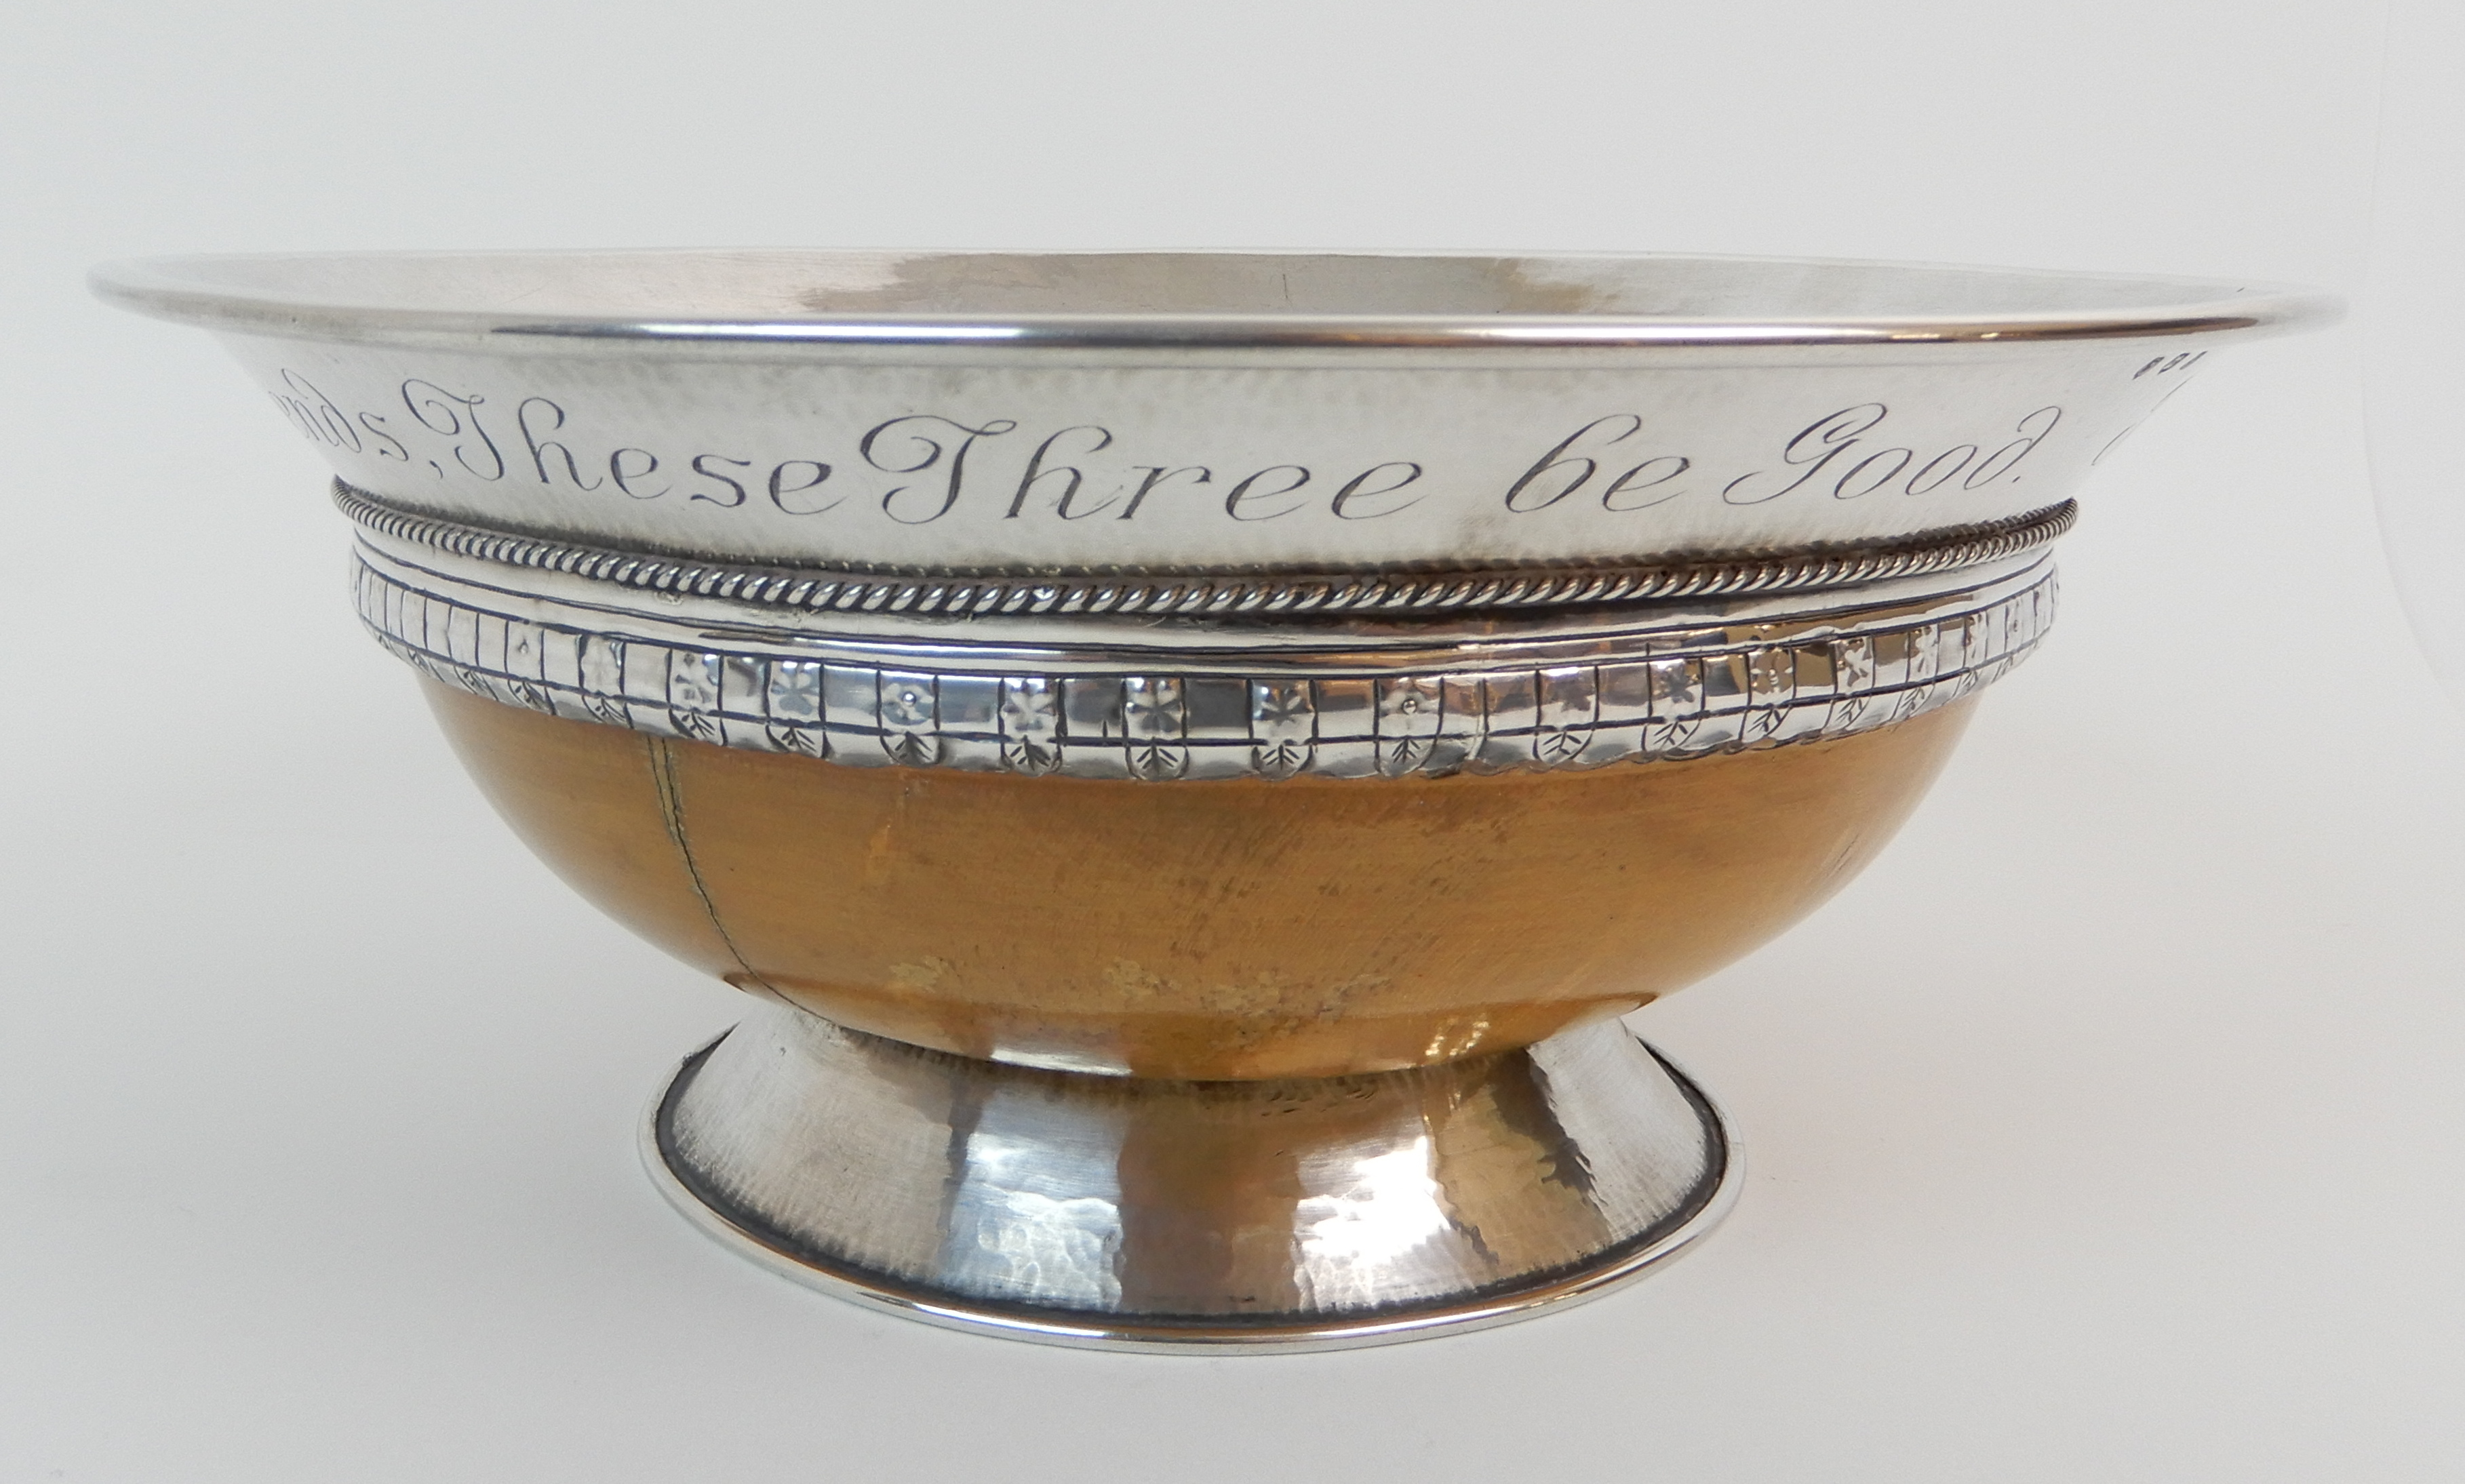 AN ARTS AND CRAFTS SILVER MOUNTED TREEN BOWL by Elizabeth Henry Kirkwood, Edinburgh 1947, or - Image 4 of 9